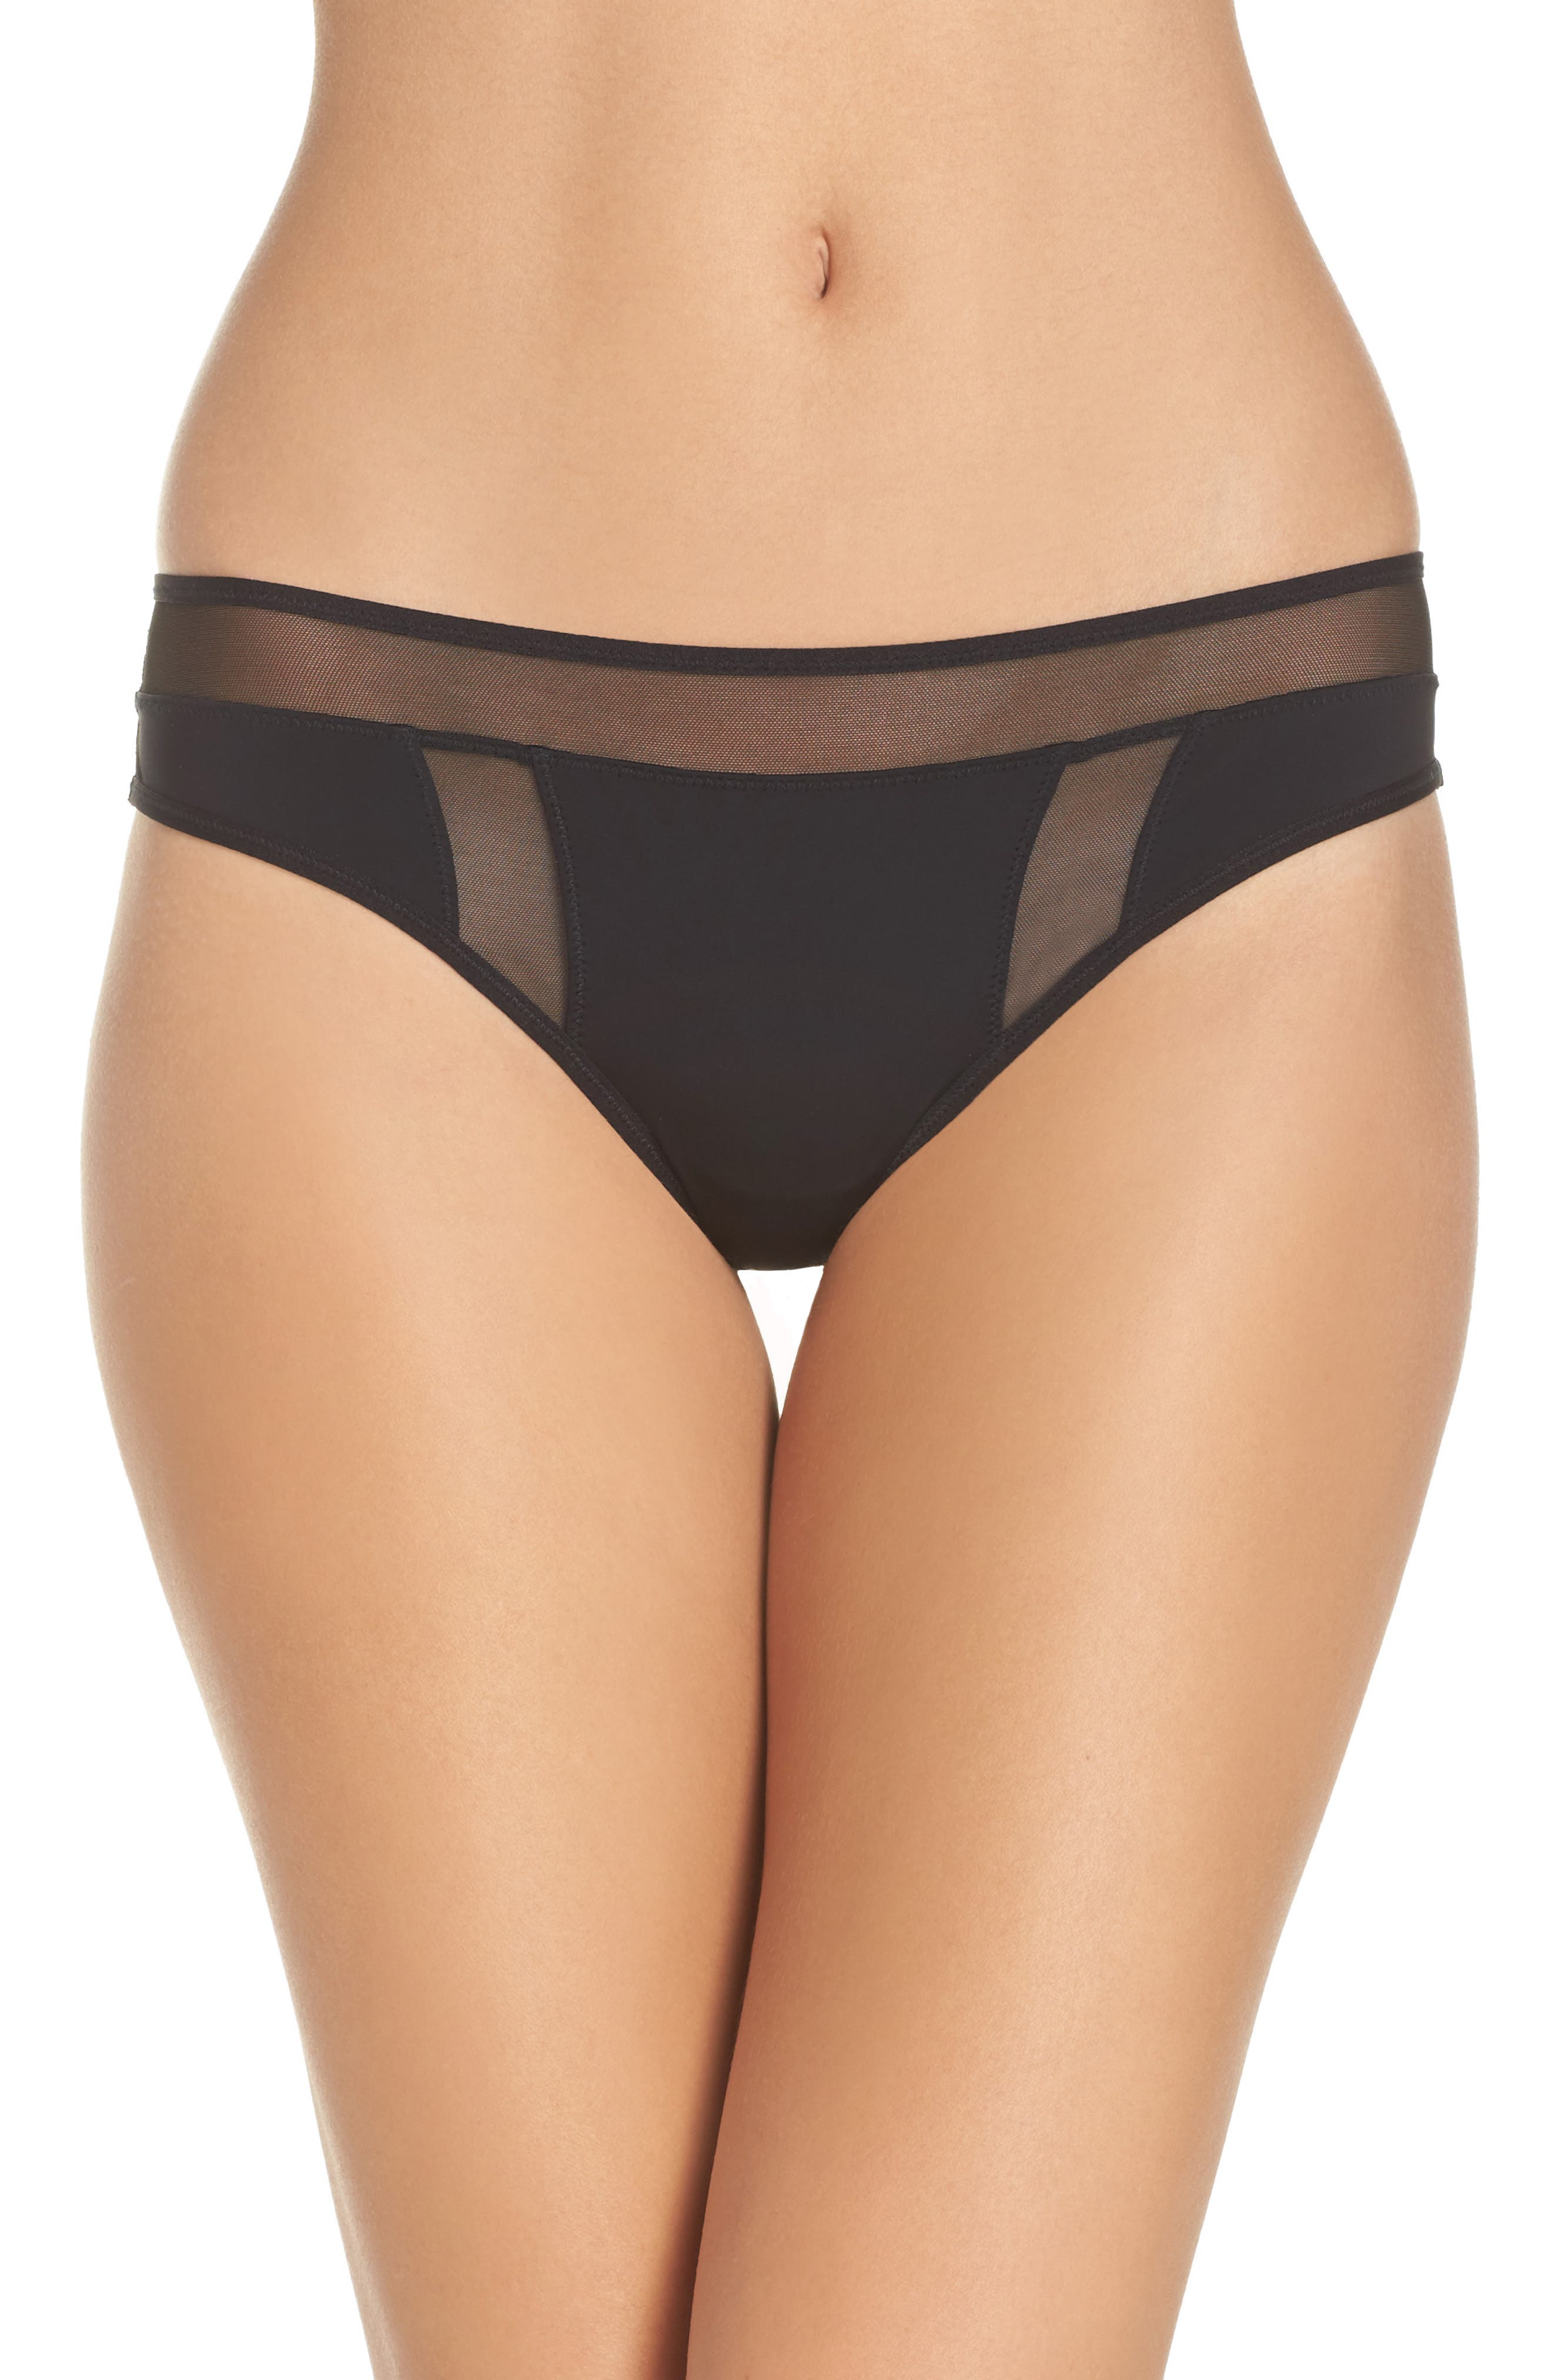 Addiction Nouvelle Lingerie Mesh Panel Tanga